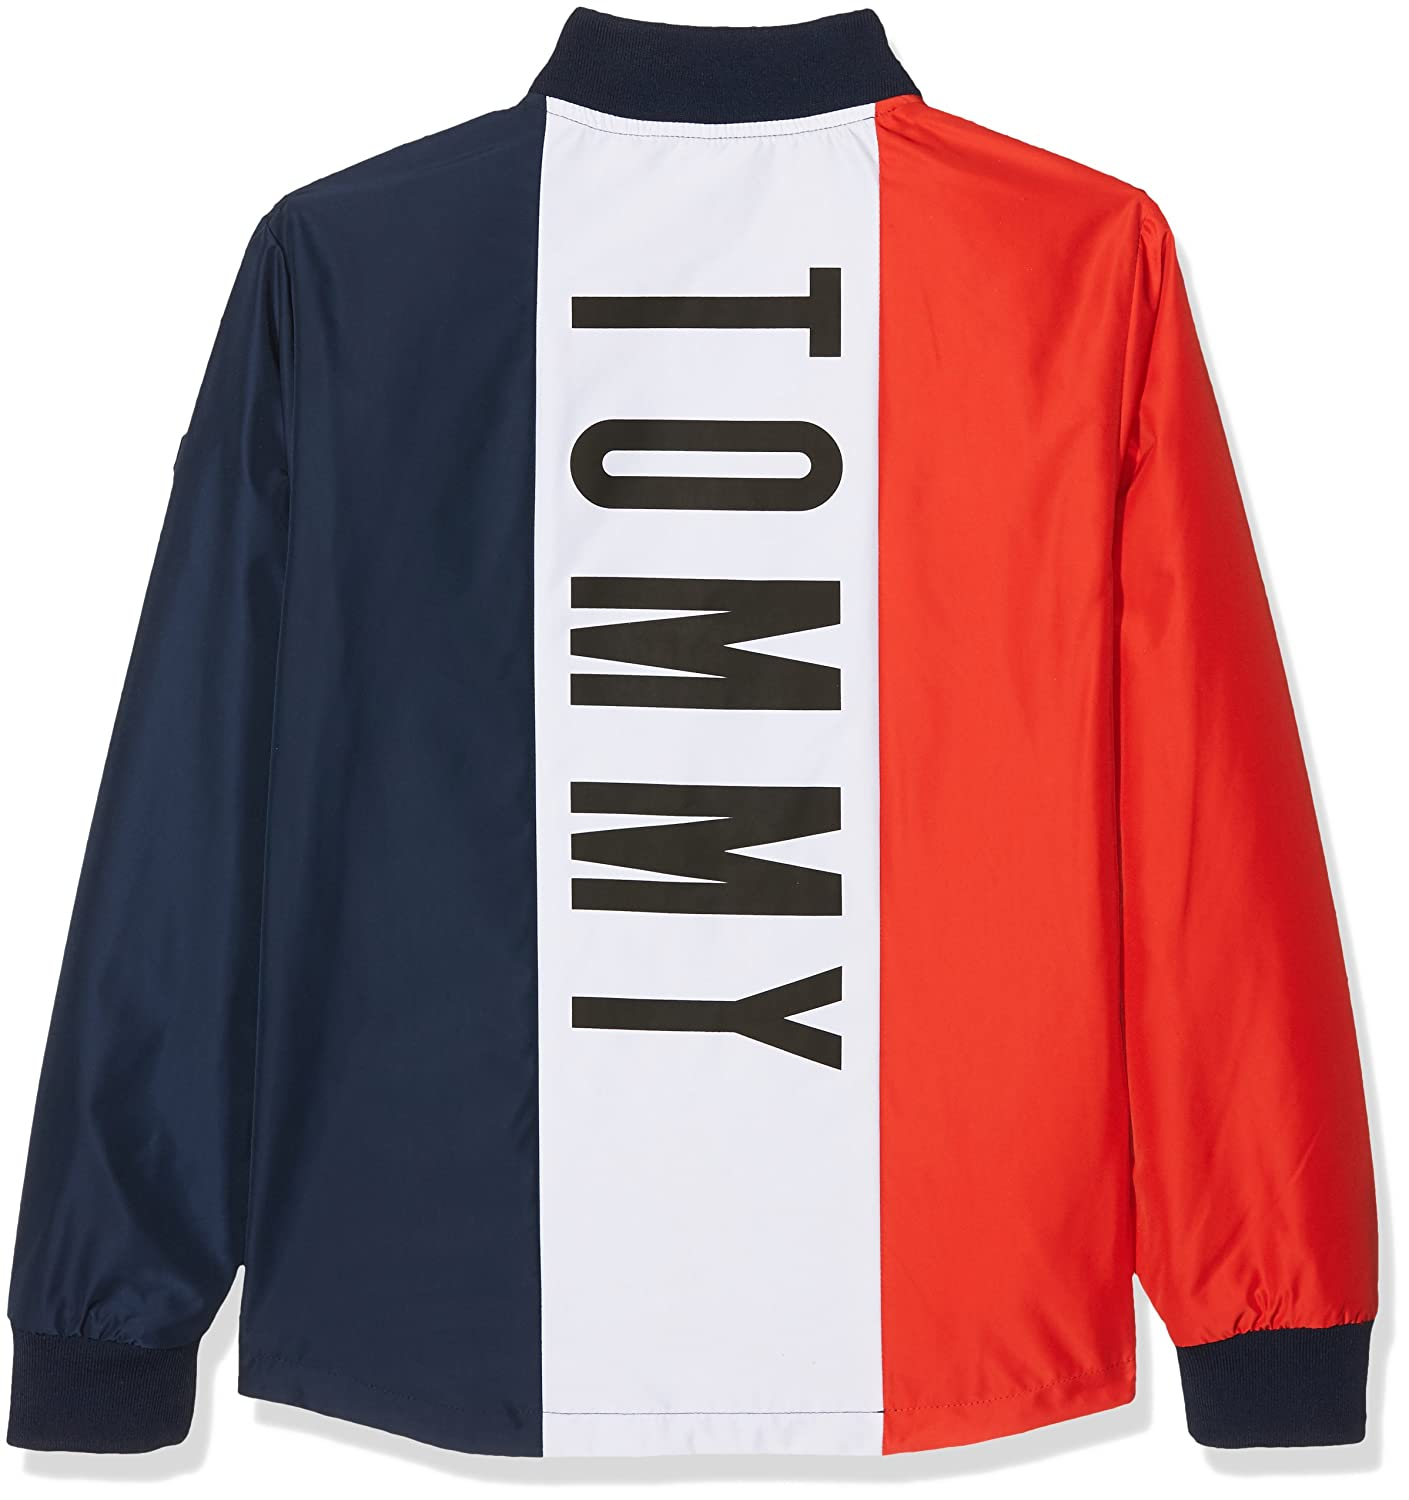 83d157bc Tommy Hilfiger Boy's S Reversible Cracker Jacket, Multicoloured (Blue/Red  002), 116: Amazon.co.uk: Clothing